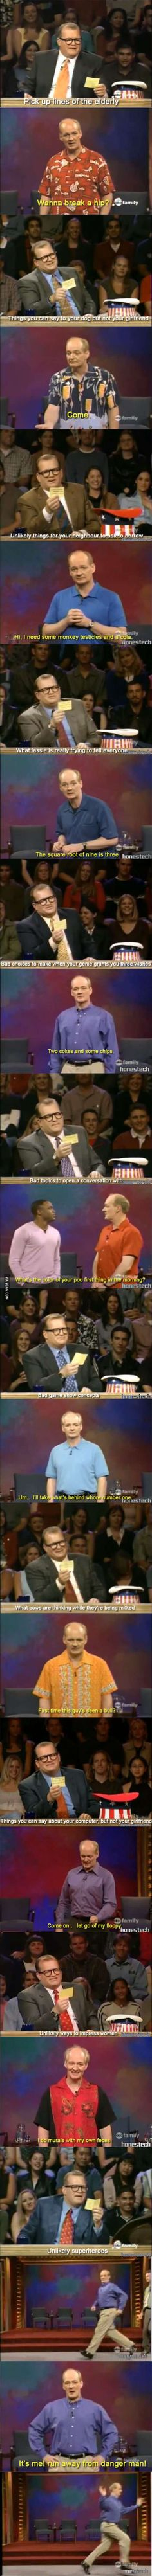 The best of Colin Mochrie.